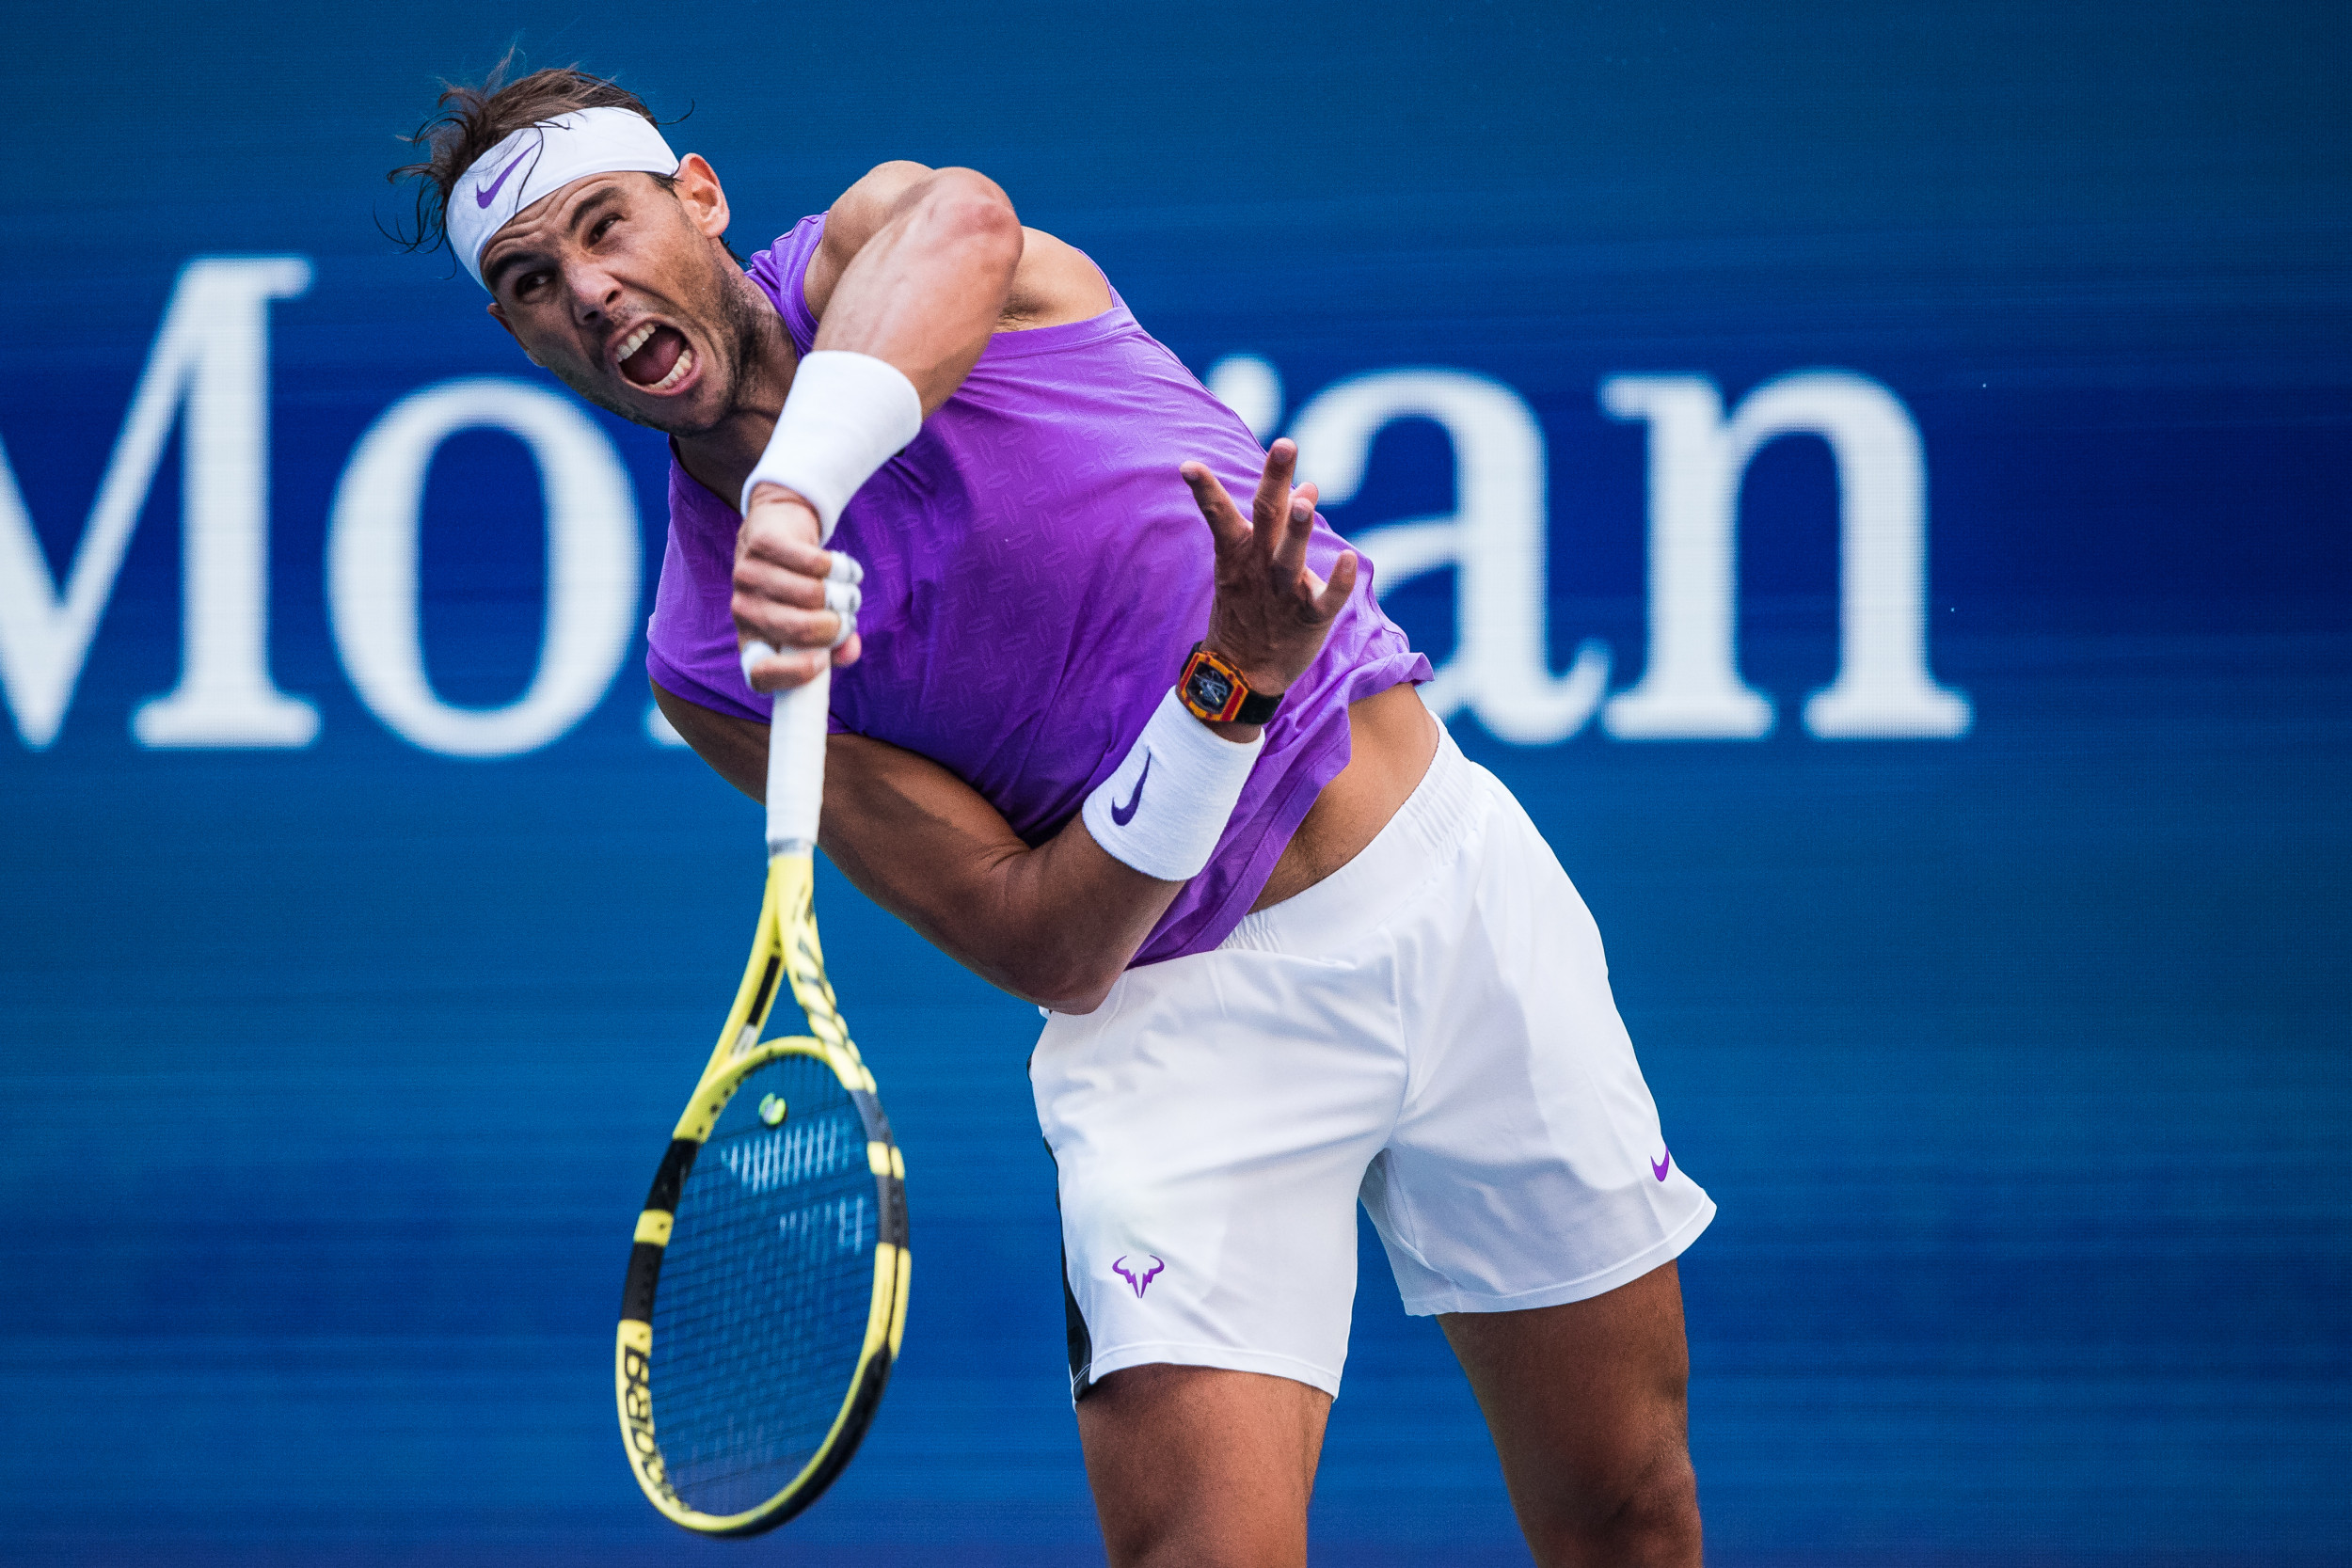 U S Open 2019 How To Watch Rafael Nadal Naomi Osaka Round Of 16 Matches Start Times Live Stream